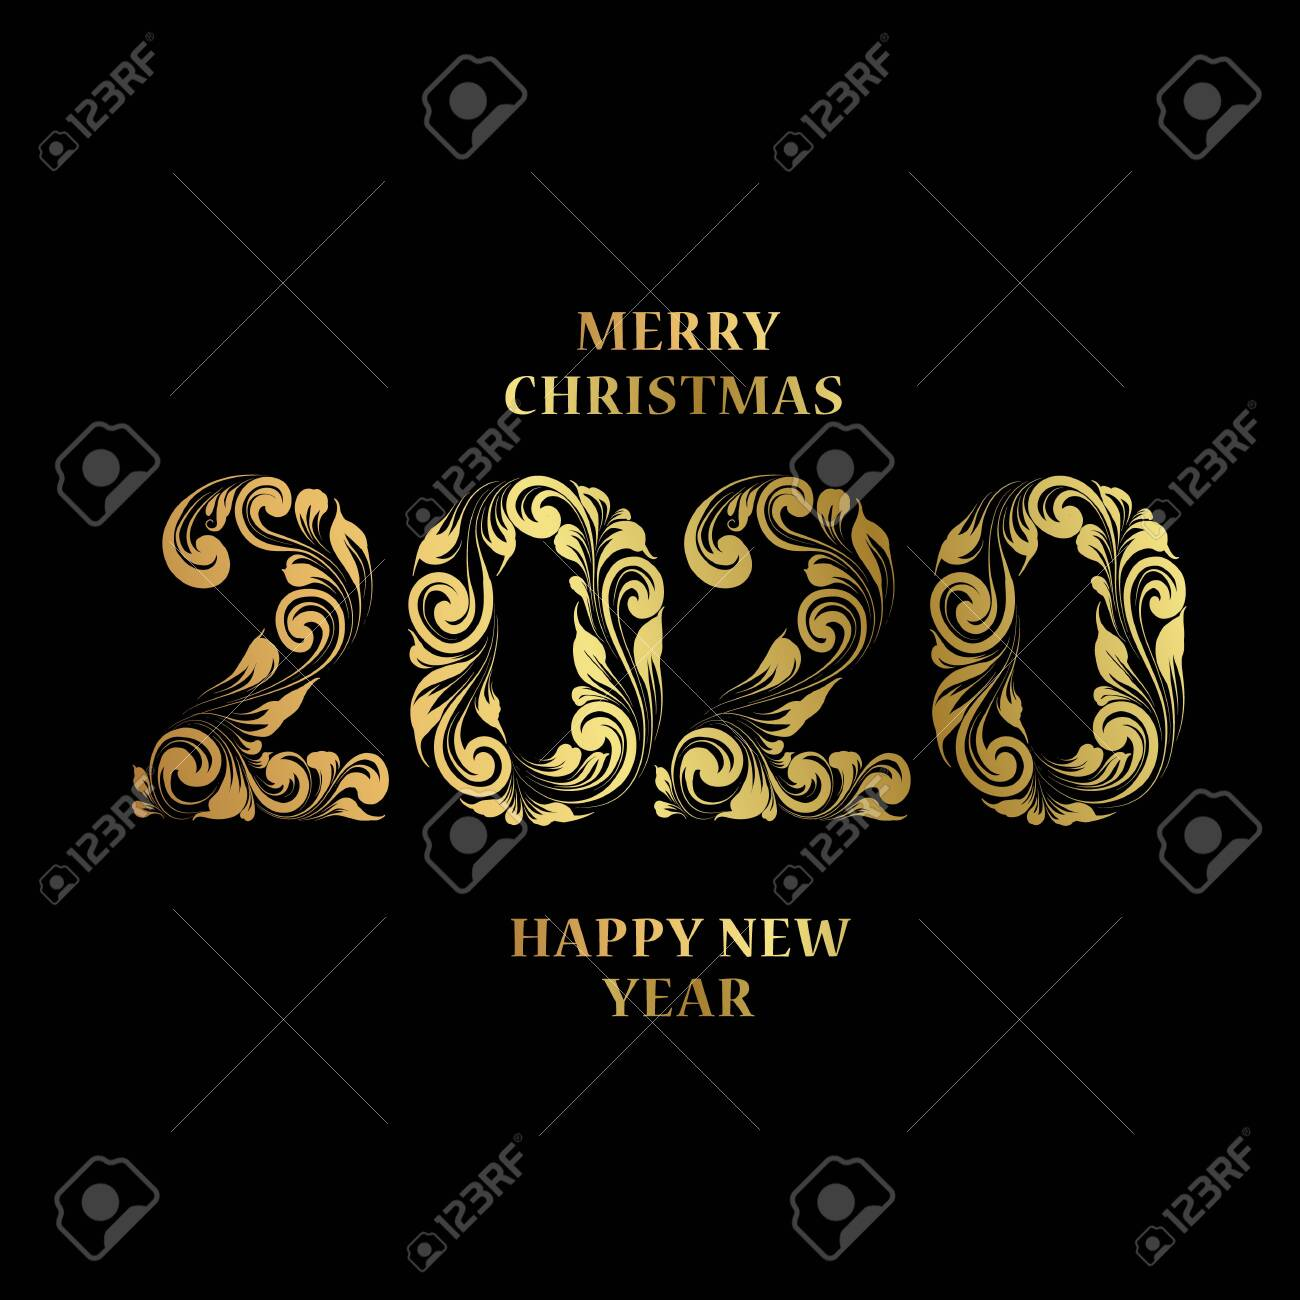 Christmas Card With Calligraphic Text Over Black Background Royalty Free Cliparts Vectors And Stock Illustration Image 128488576